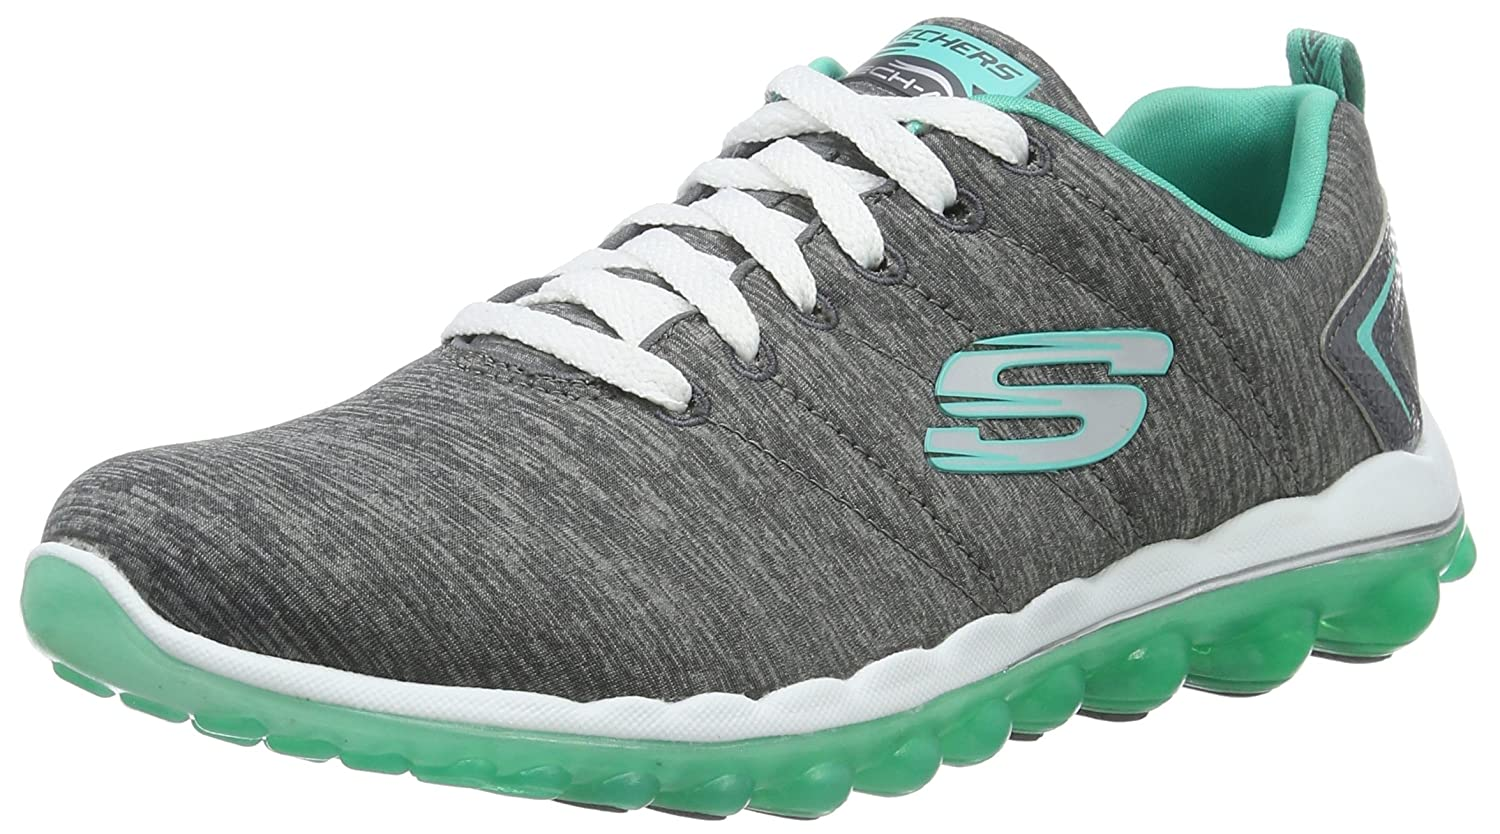 【予約中!】 Skechers B(M) Women's US Skech-Air 2.0 - Discoveries Ankle-High Skechers Fabric Running Shoe B01G72RSJA Charcoal/Green 7 B(M) US 7 B(M) US|Charcoal/Green, キヨカワムラ:2b97c90f --- a0267596.xsph.ru